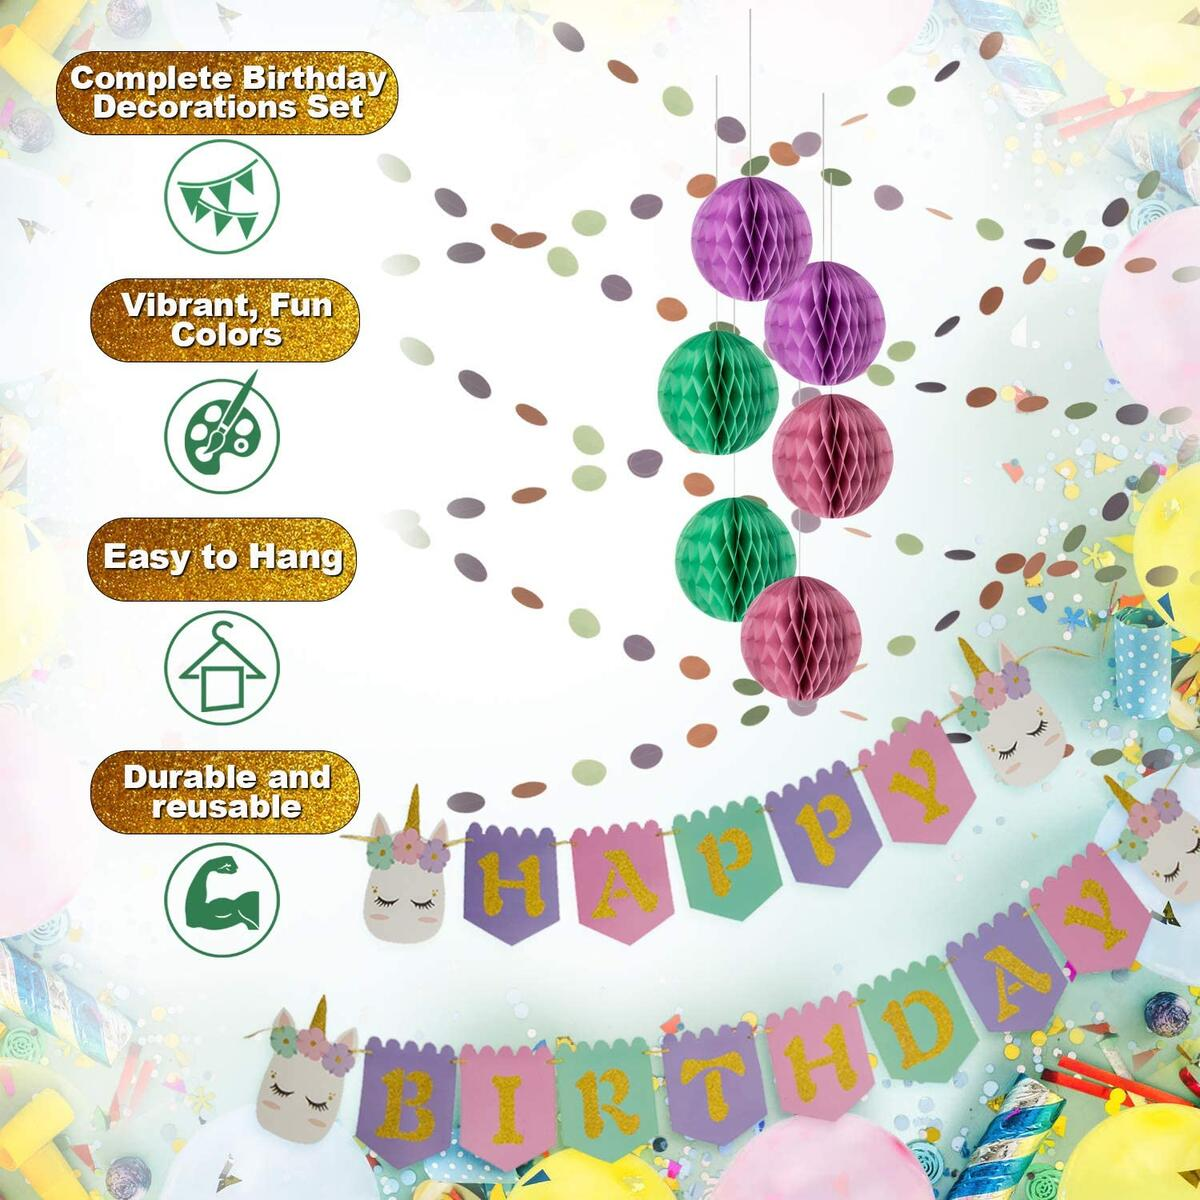 Artistrend Unicorn Happy Birthday Banner Set   Girls B-Day Party Decorations Backdrop with Colorful Sign Honeycomb Balls Swirls Streamers   Its Time for an Unforgettable Birthday Celebration